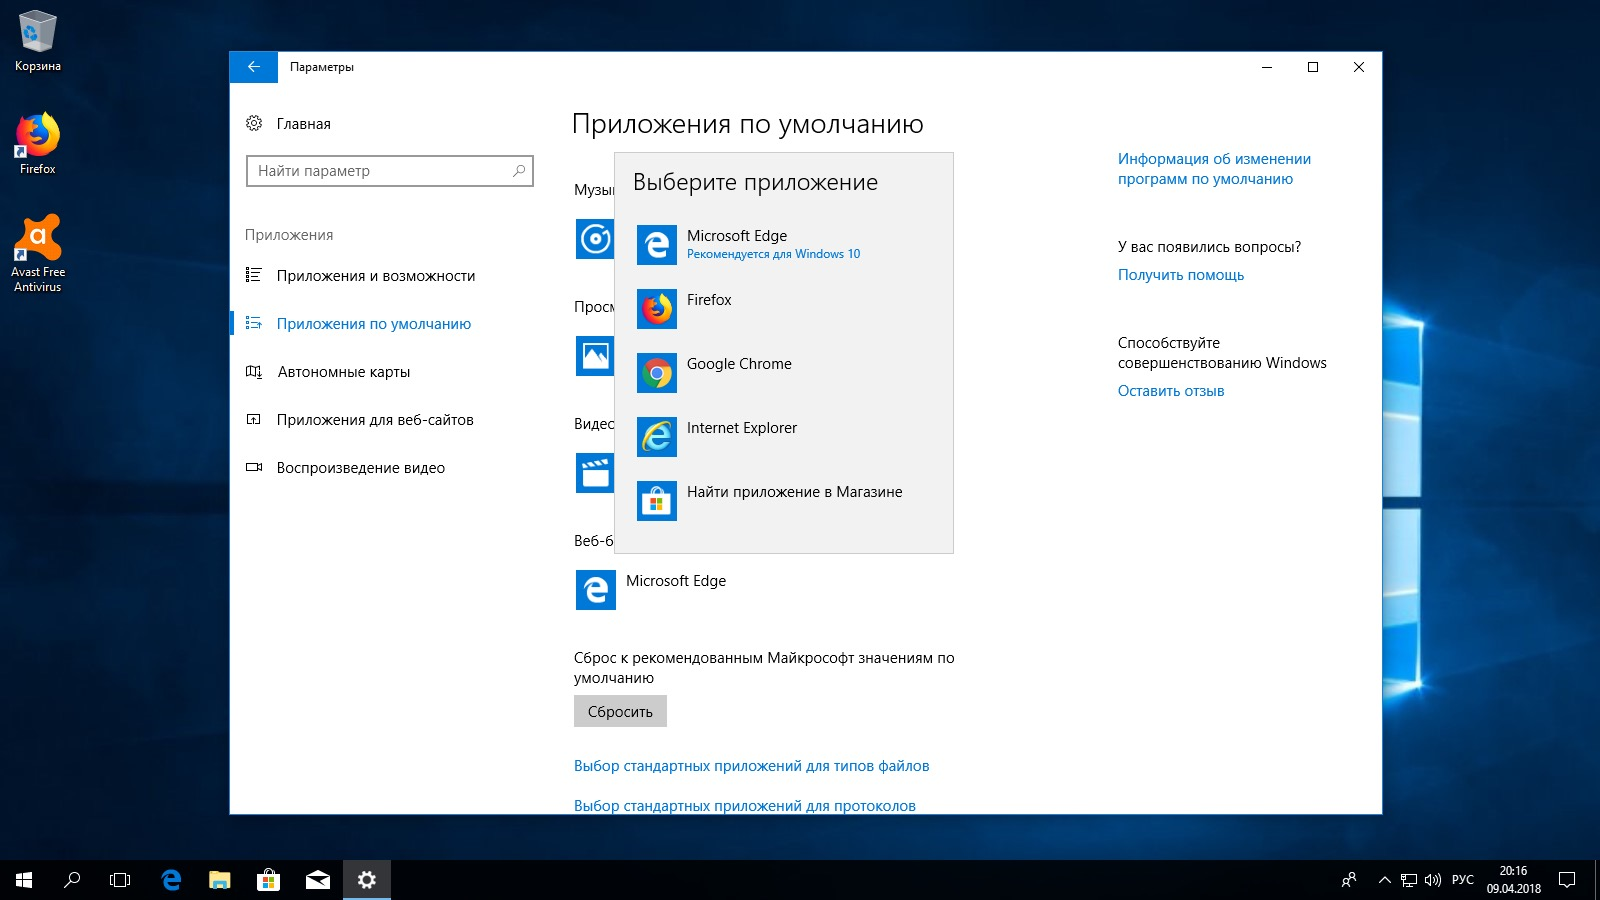 Как сделать архивацию windows 10 фото 625